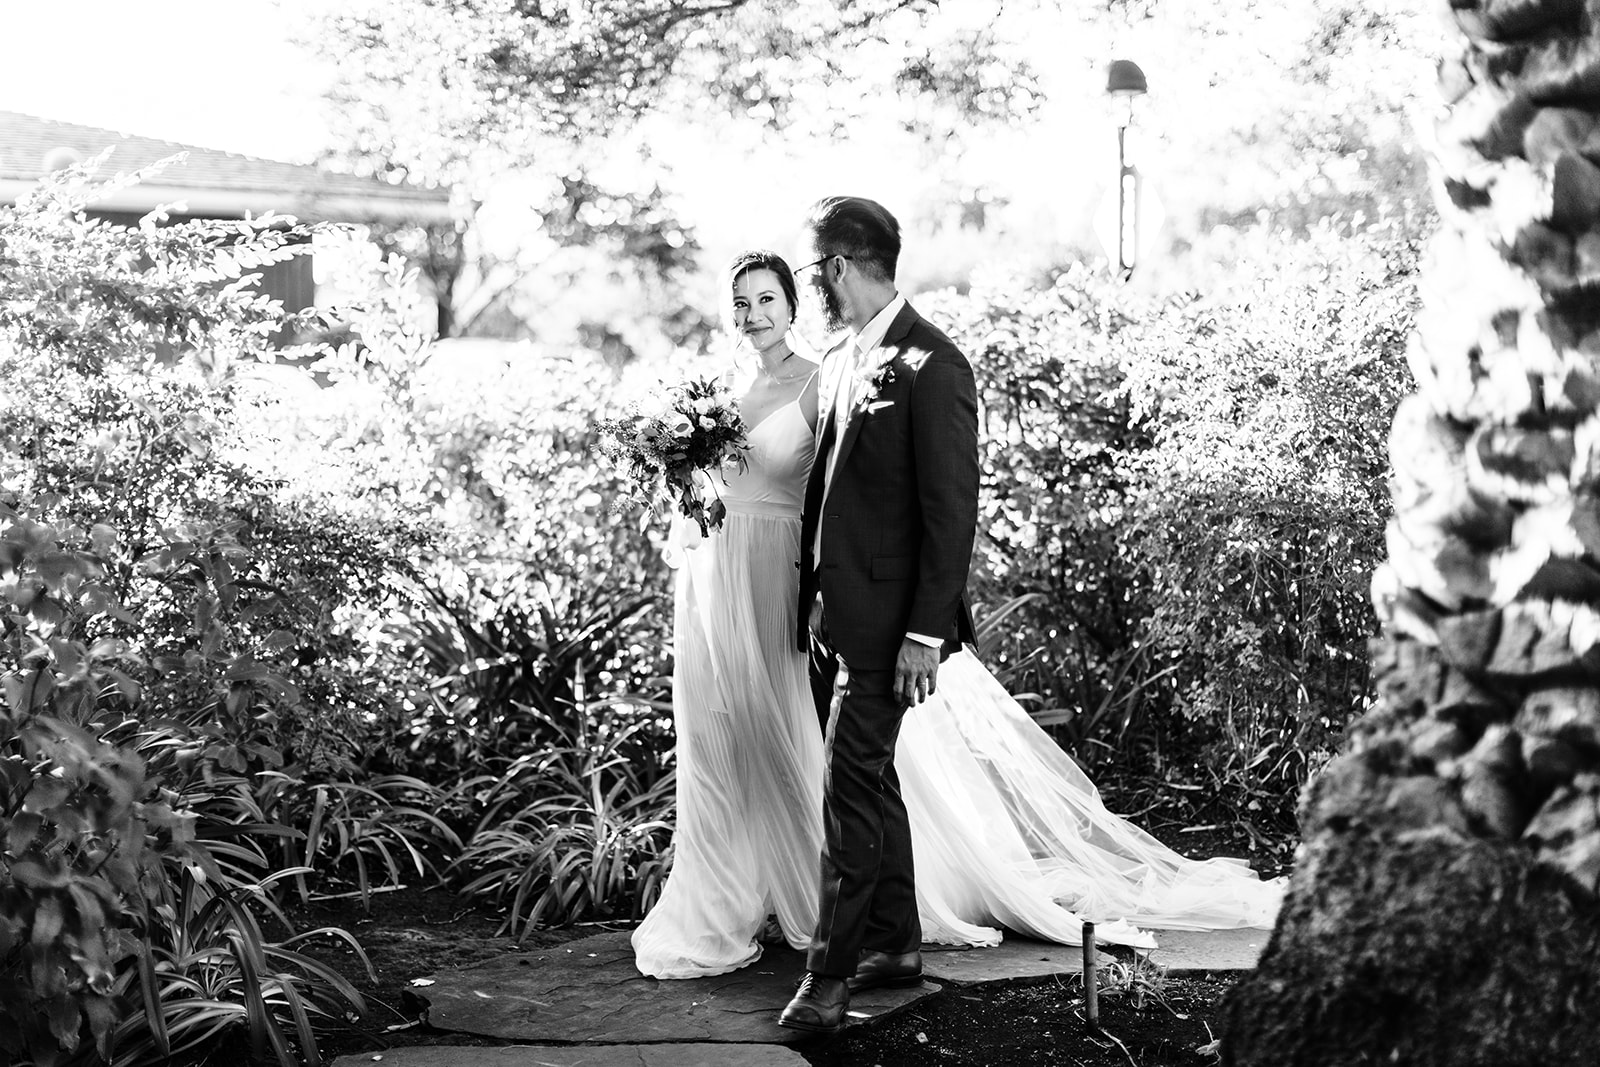 Los-Altos-History-Museum-Wedding_Orange-County-Wedding-Photographer_Clarisse-Rae-Photo-Video_76